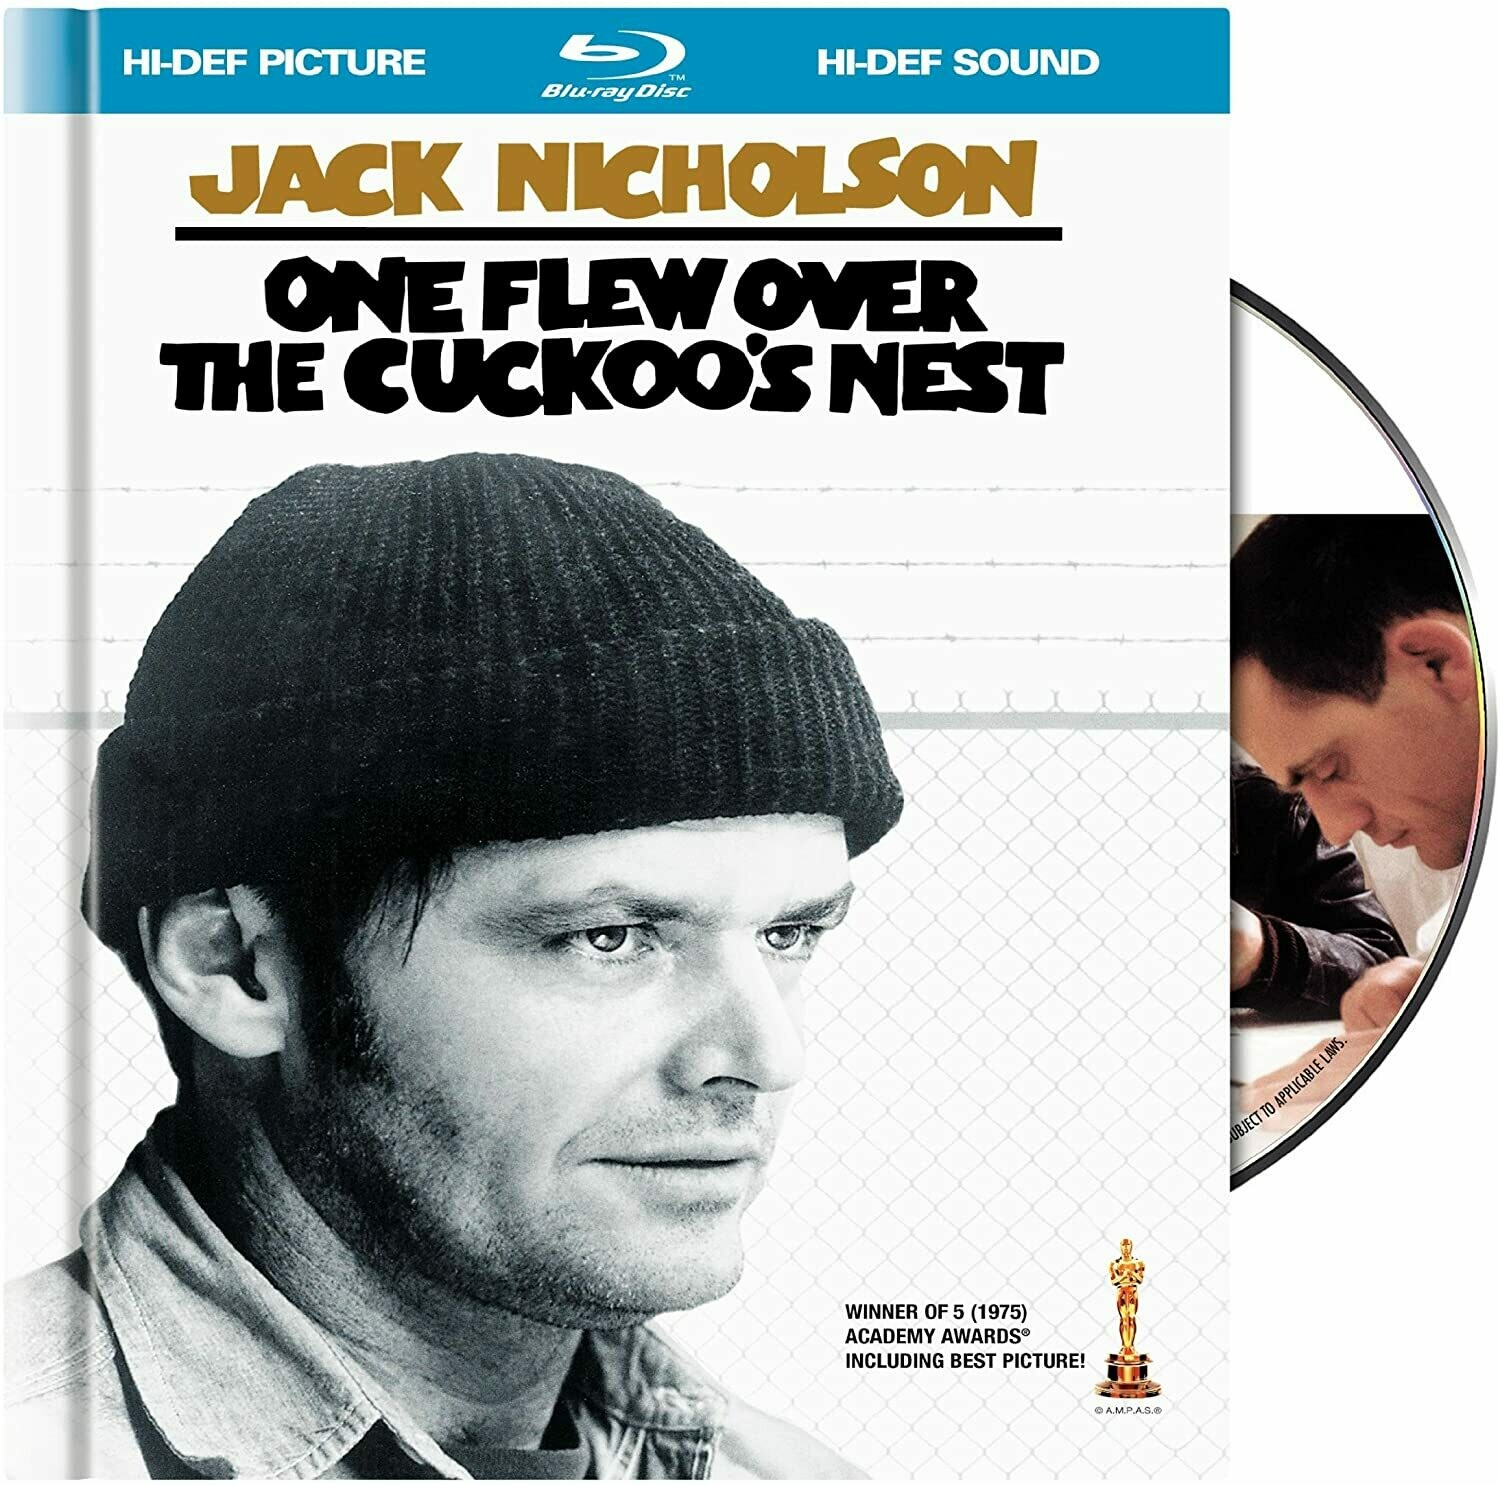 ONE FLEW OVER THE CUCKOO'S NEST - BLURAY